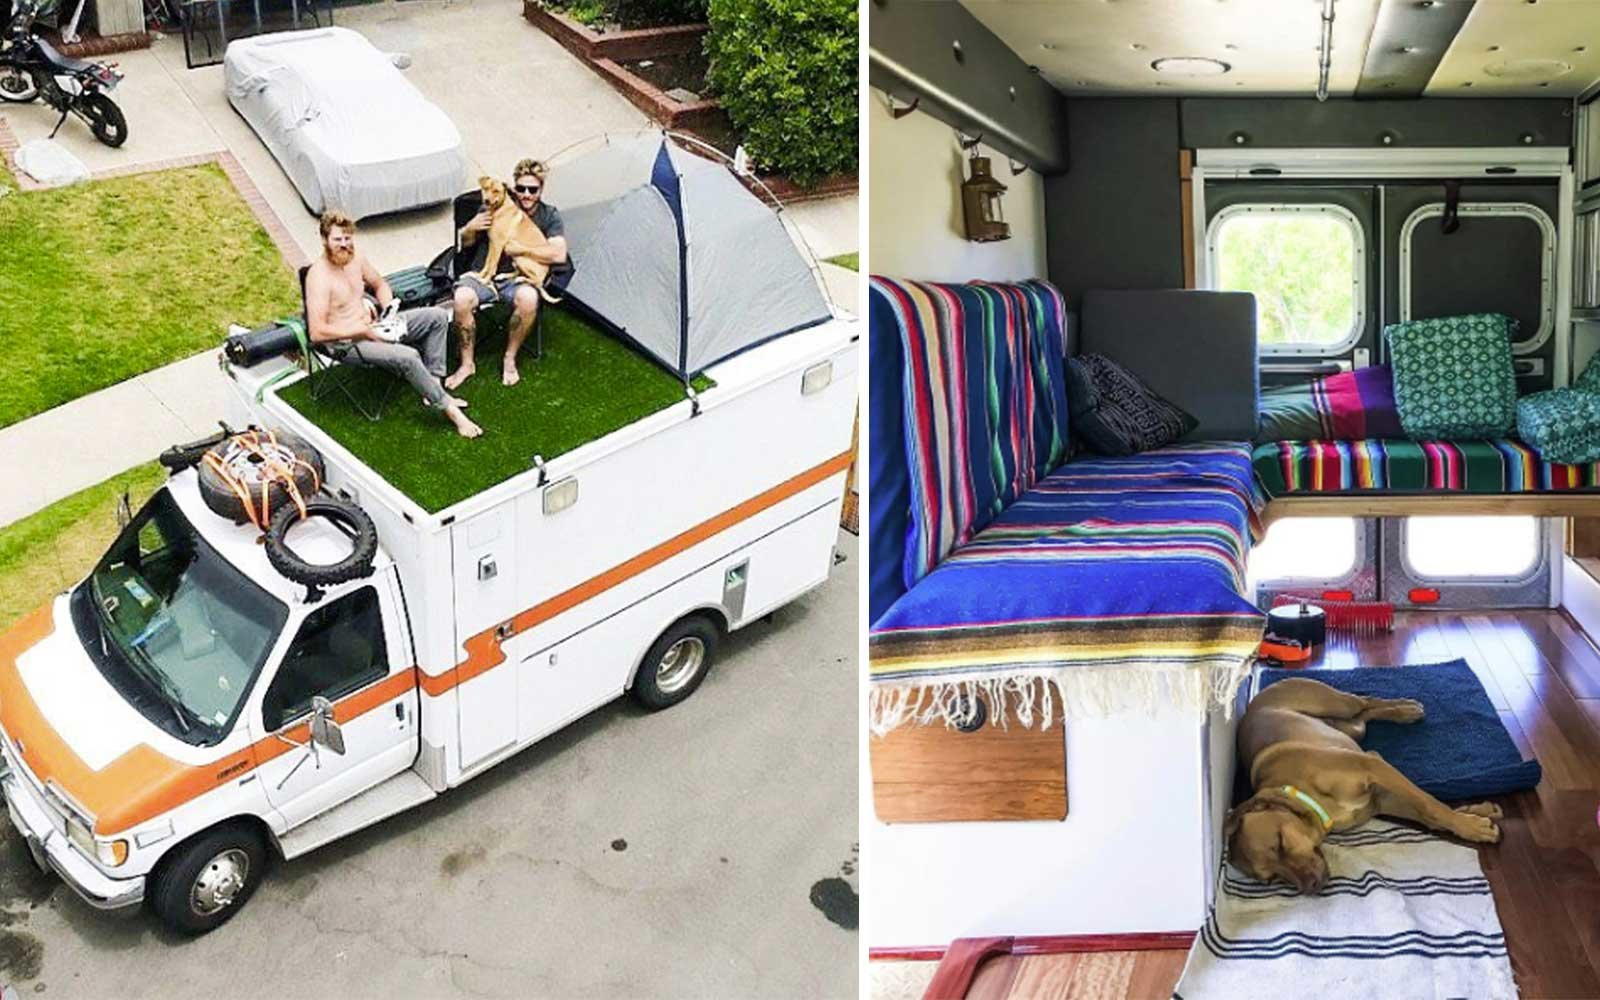 Old Ambulance For Sale >> This Man Travels Around the World in a Tricked Out Ambulance Van | Travel + Leisure